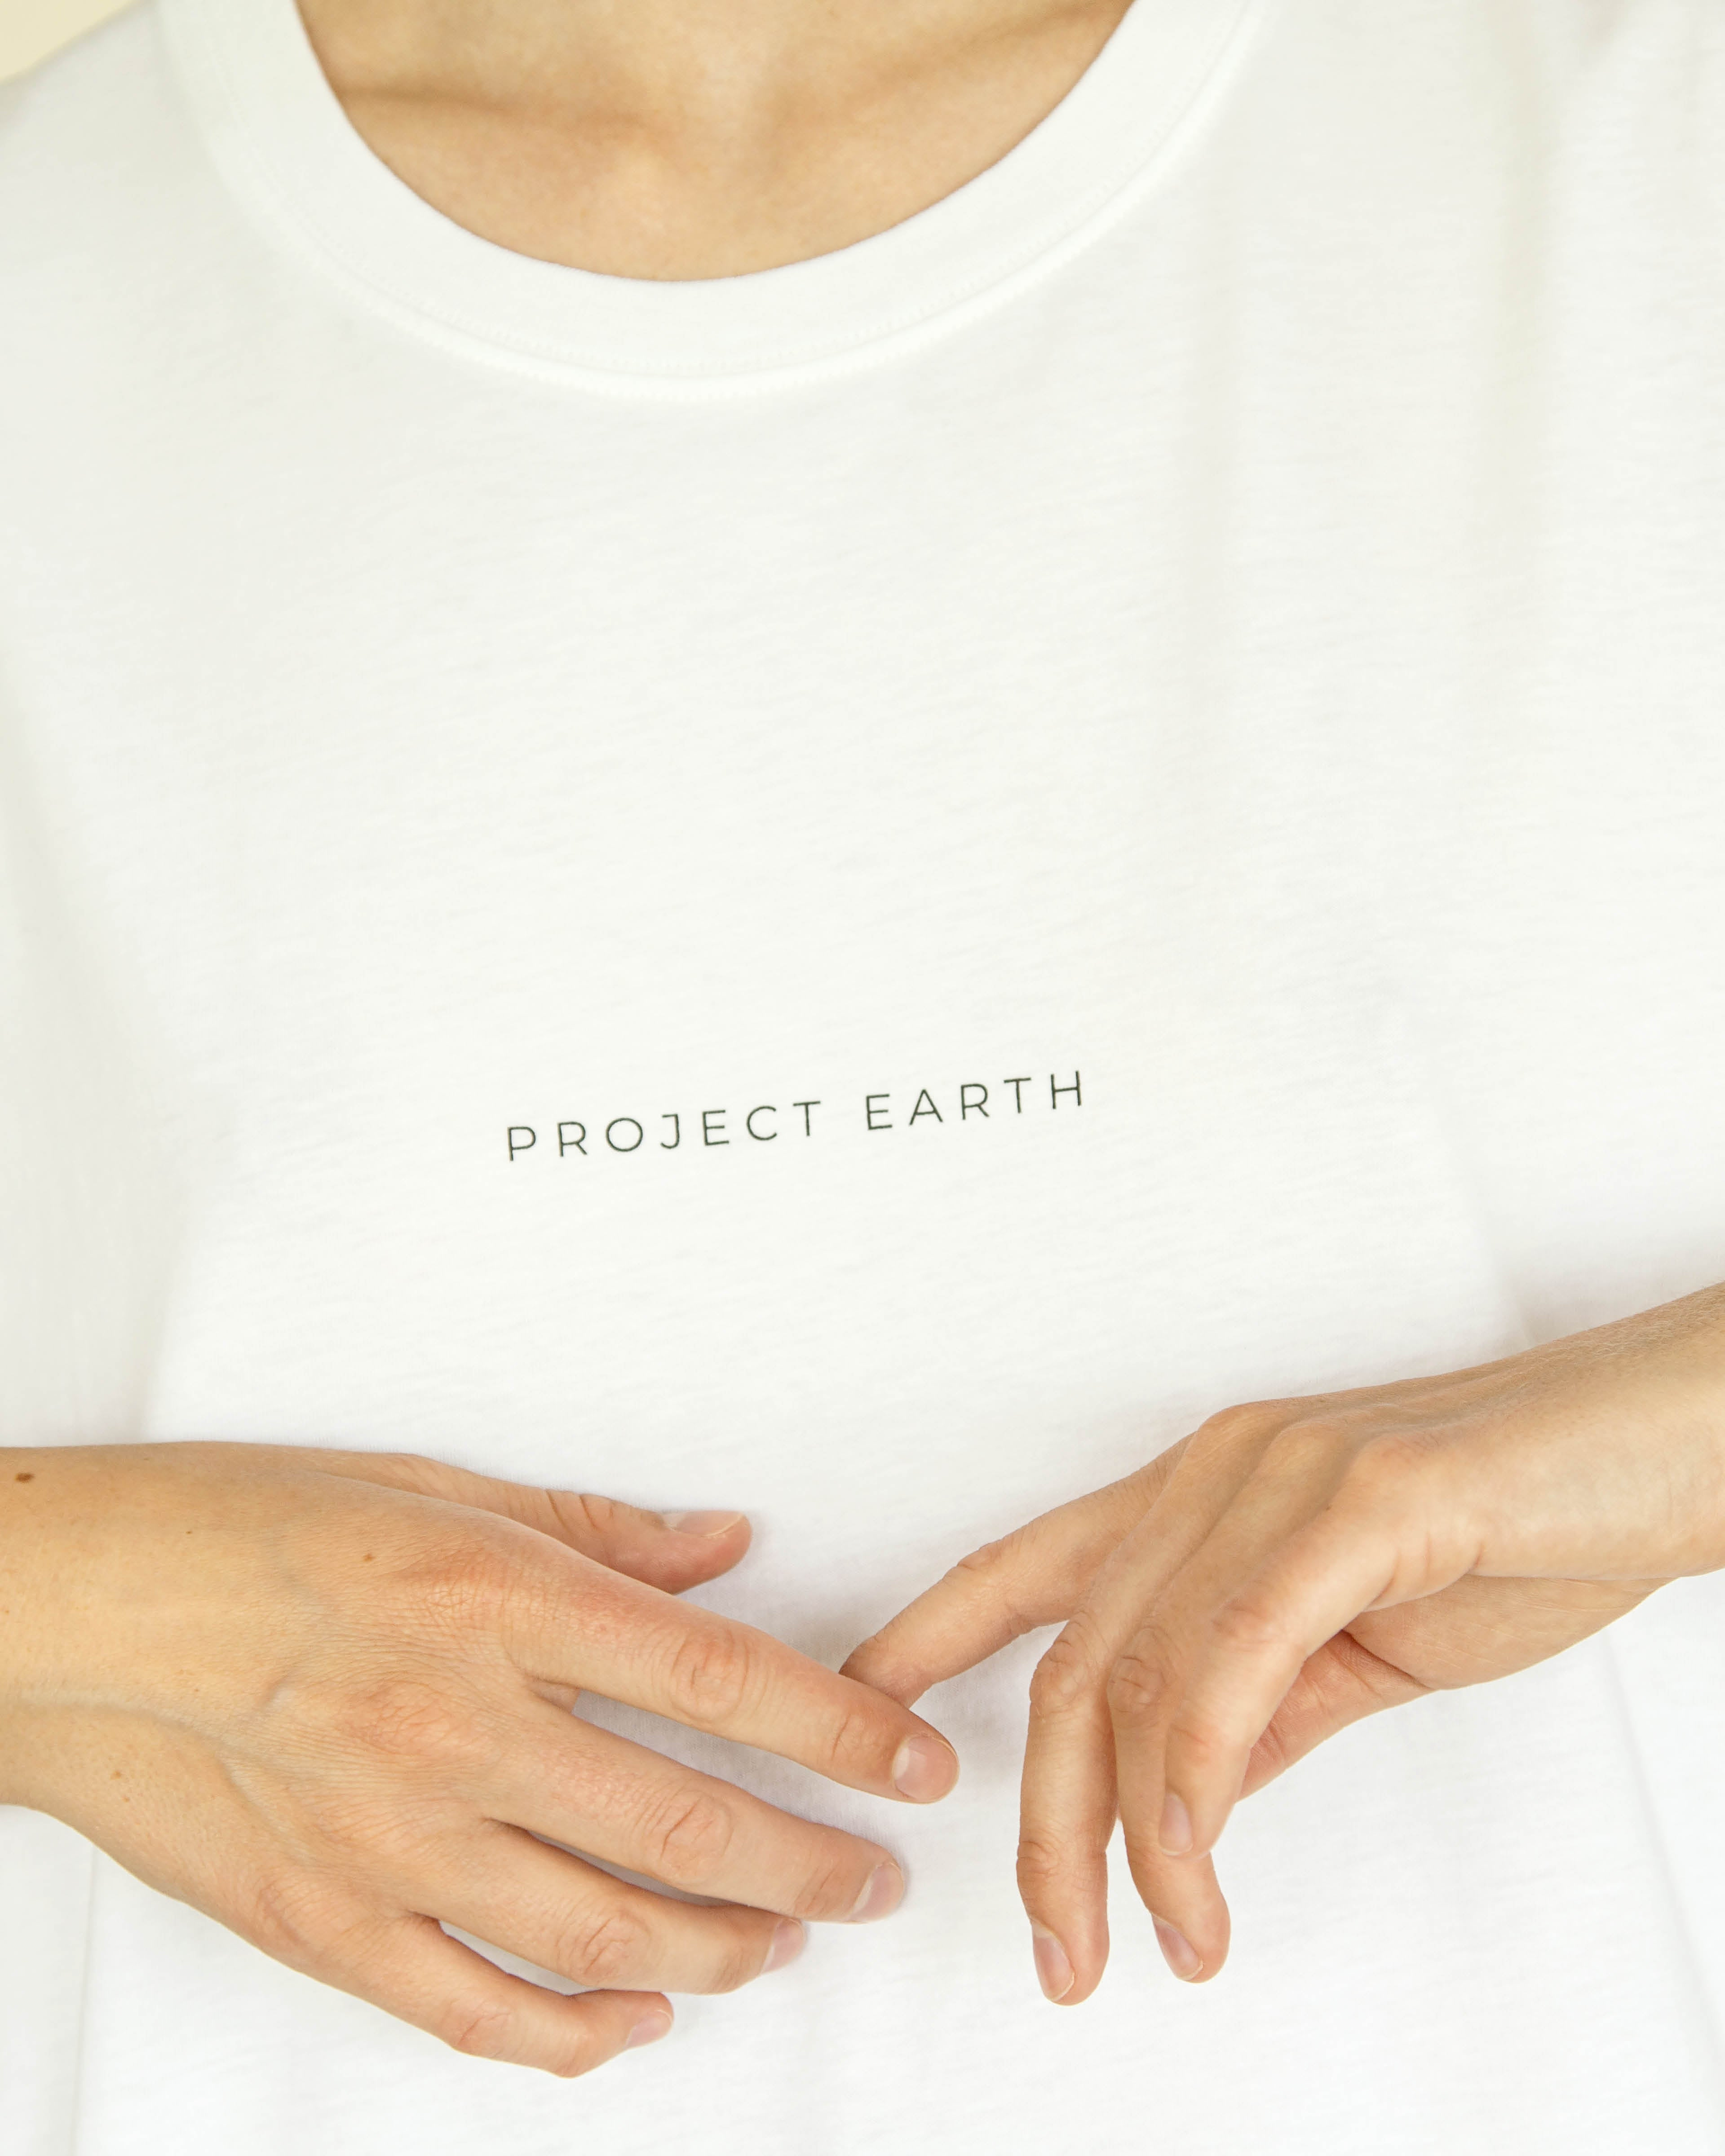 'Project Earth' Limited Edition T-Shirt